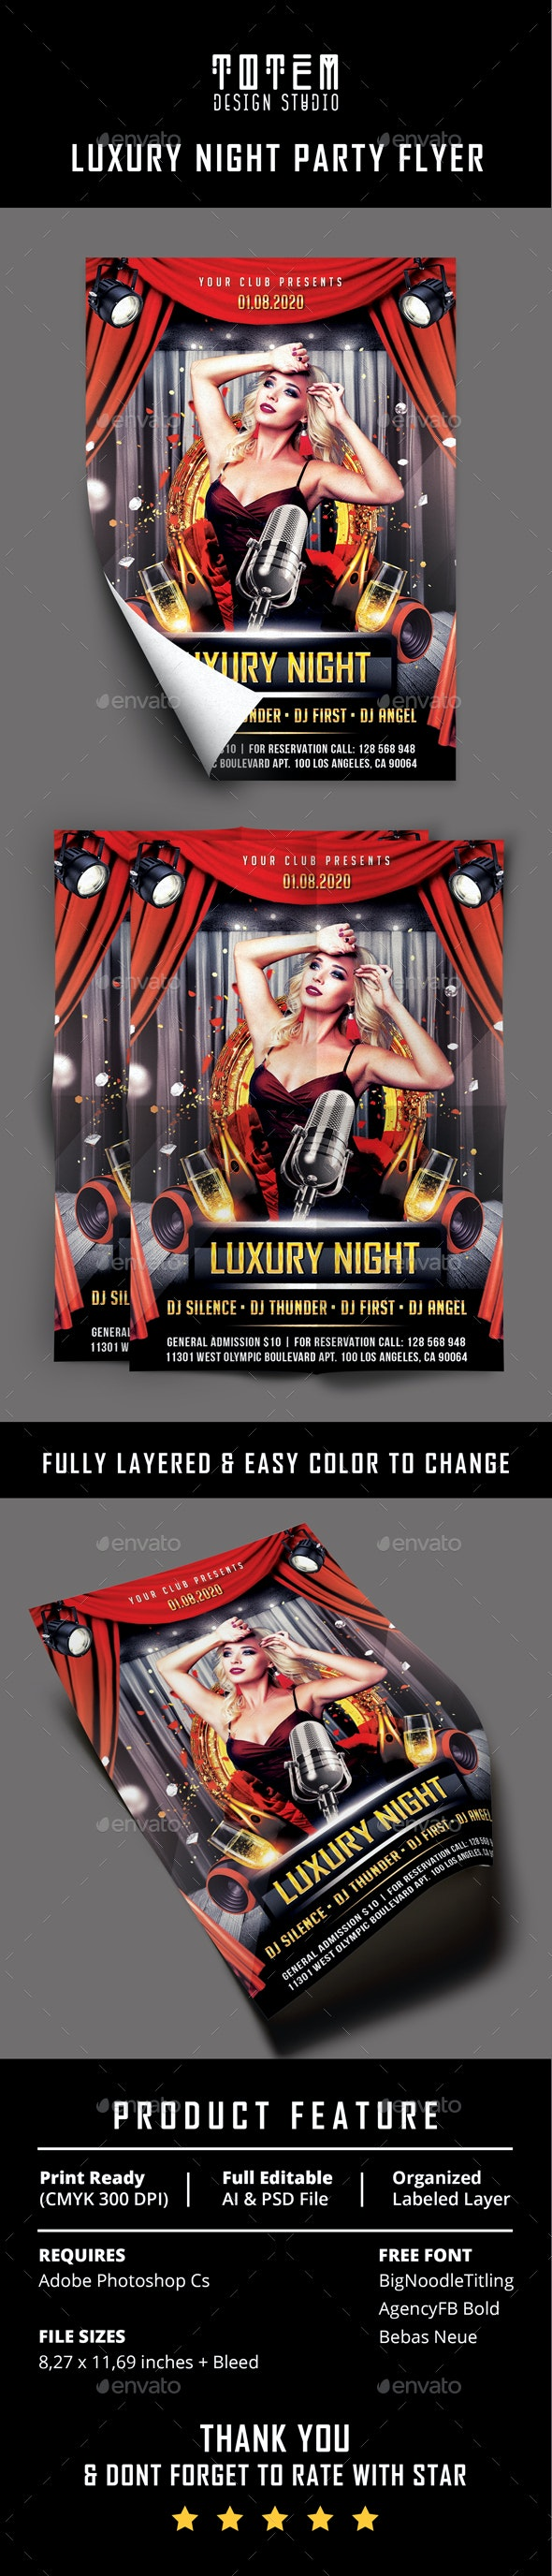 Luxury Night Party Flyer - Print Templates